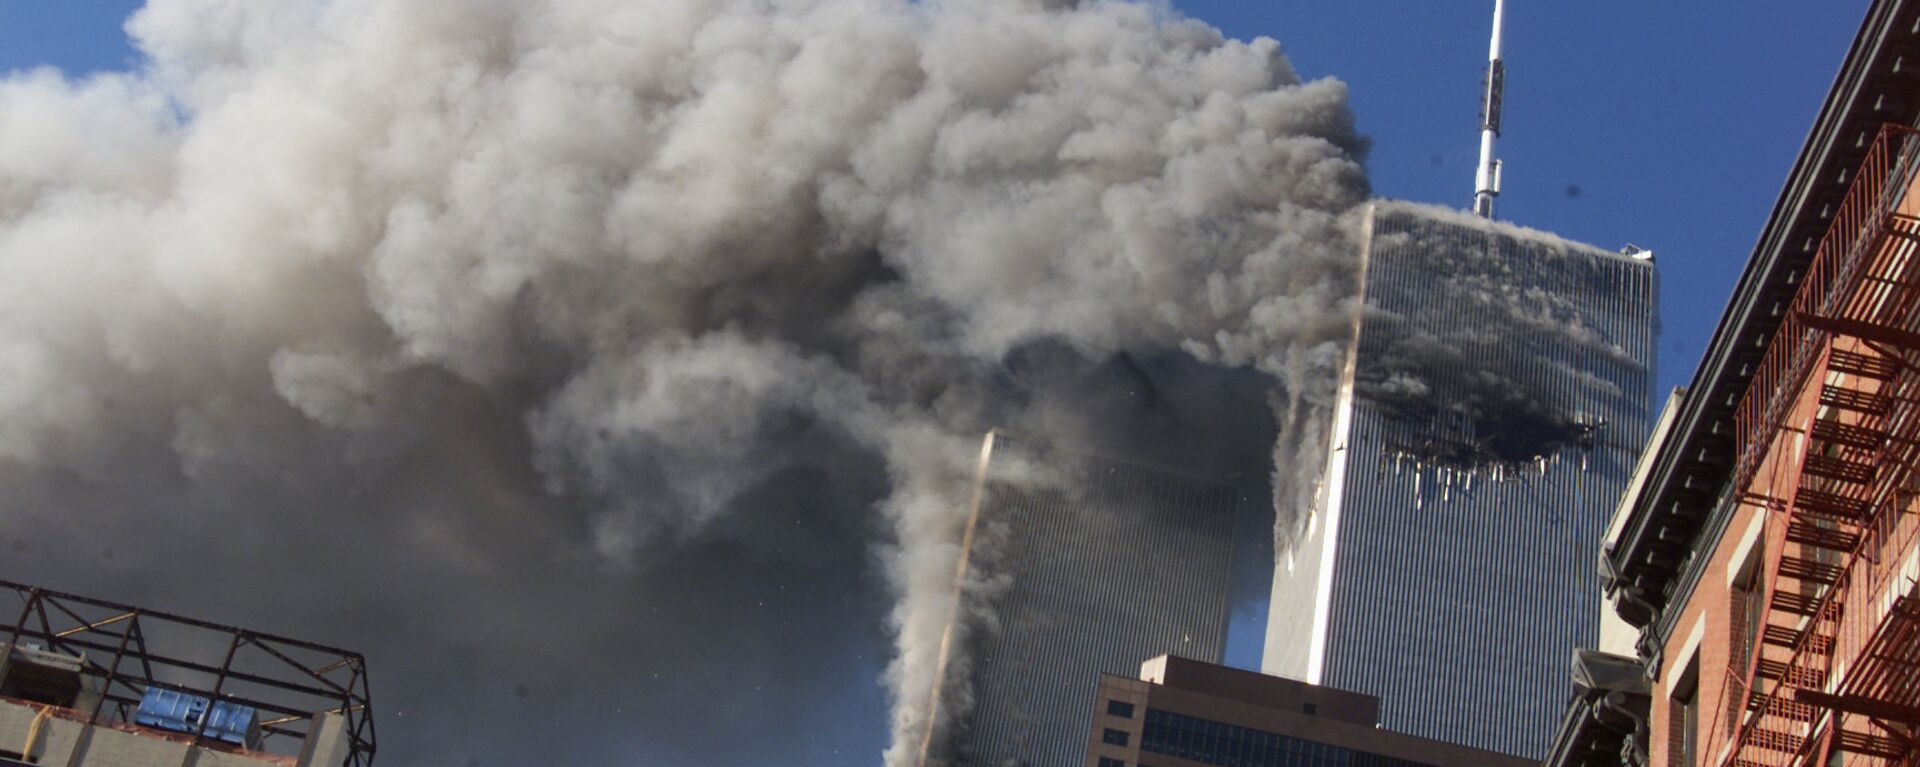 This 11 September 2001 file photo shows smoke rising from the burning twin towers of the World Trade Center after hijacked planes crashed into the towers, in New York City. - Sputnik International, 1920, 26.08.2021